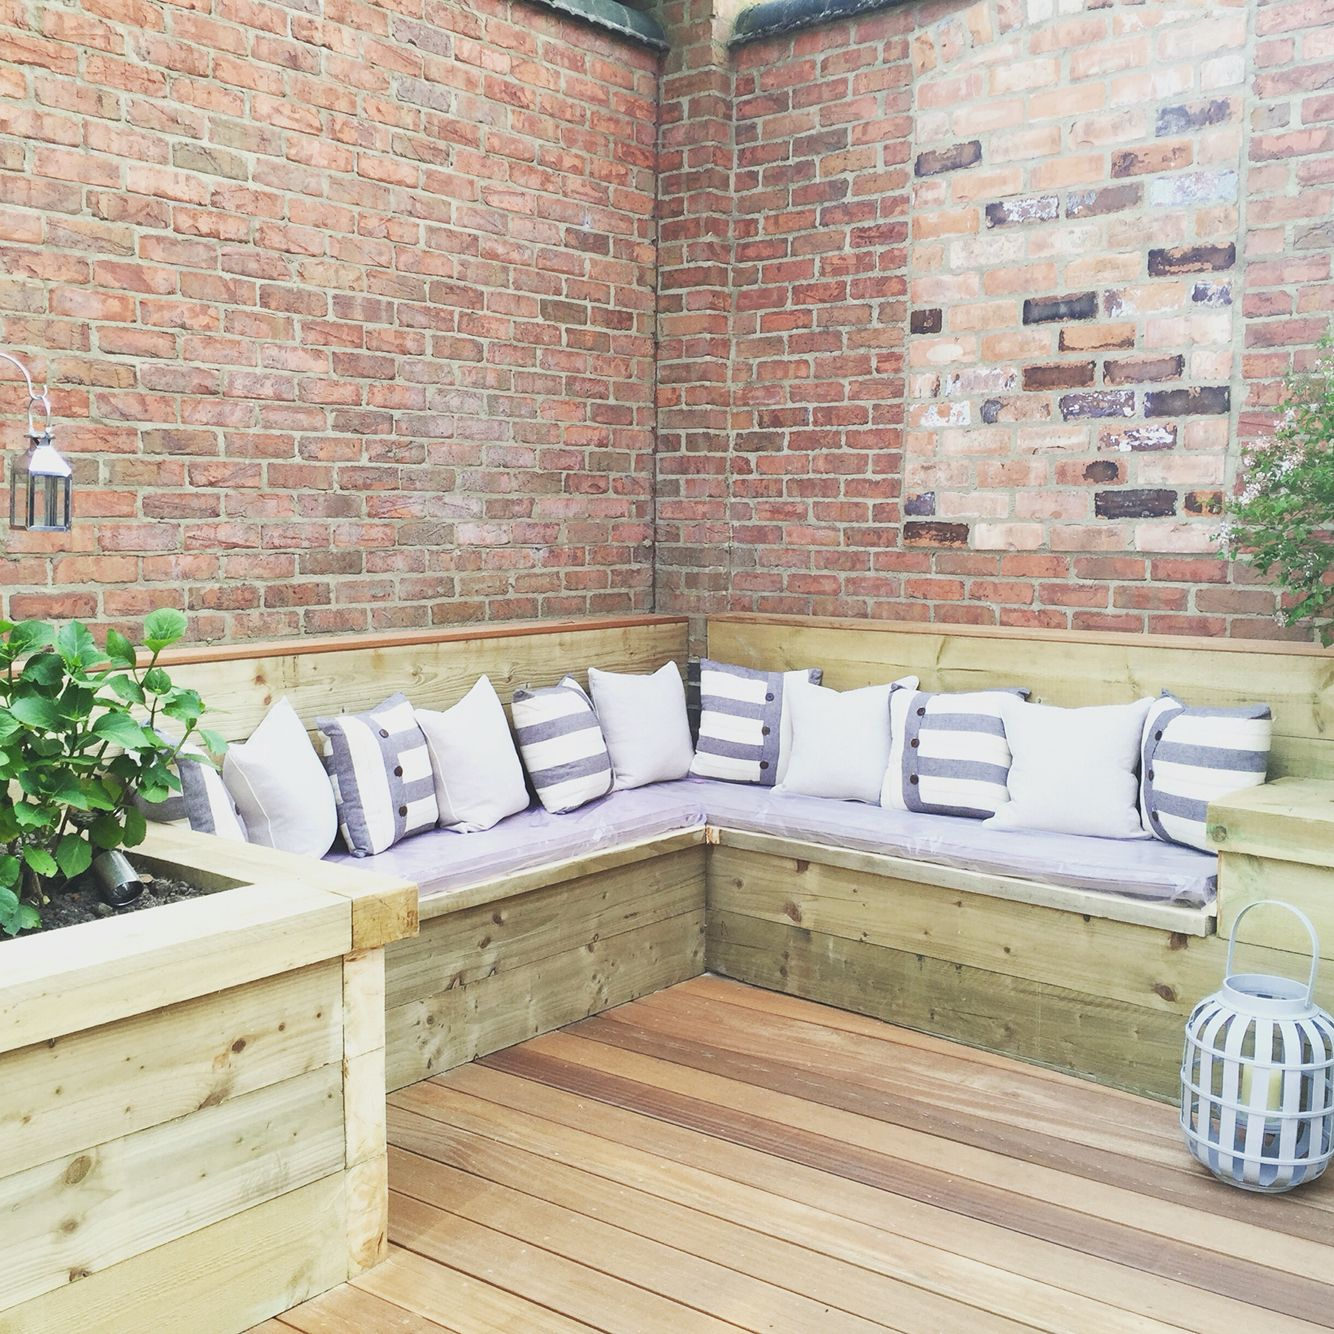 Garden Built In Corner Seating Area. Sleepers And Decking